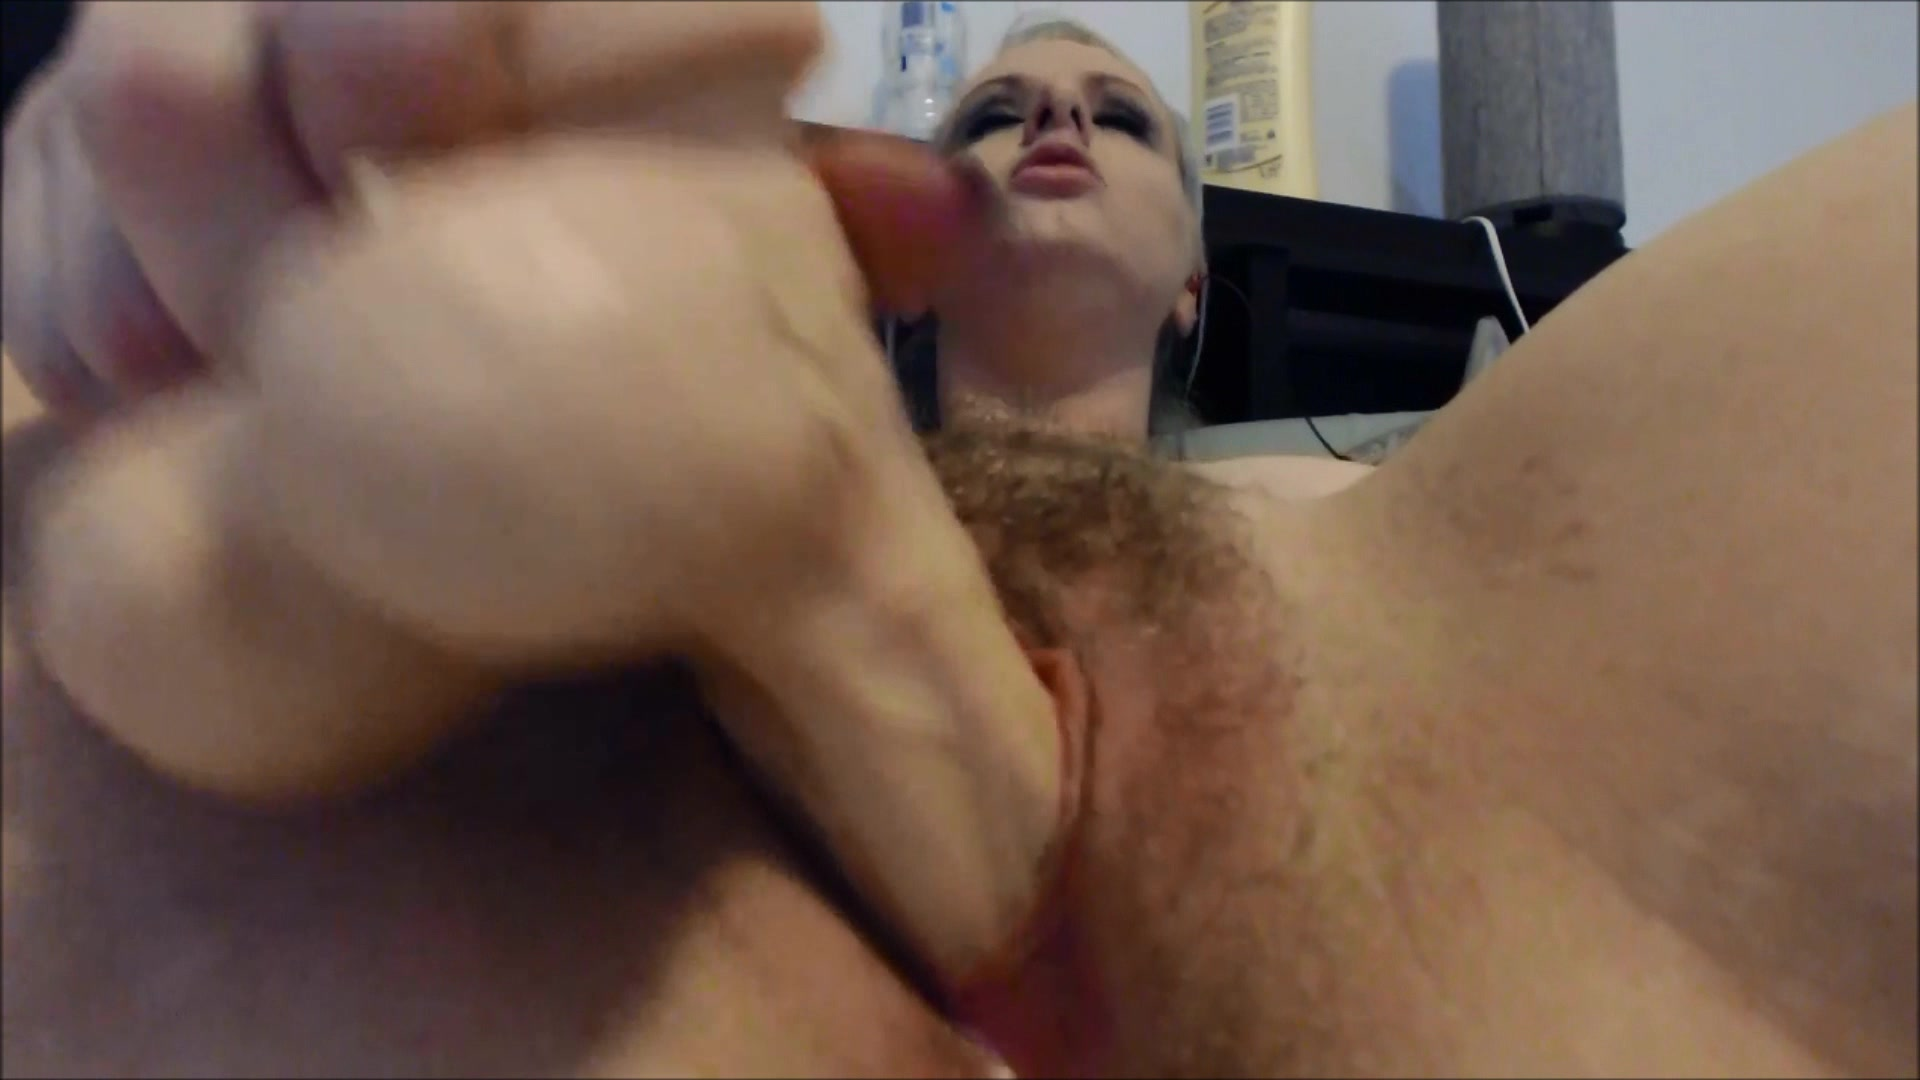 opinion you whore slut ex licks my balls then deepthroats can recommend visit you